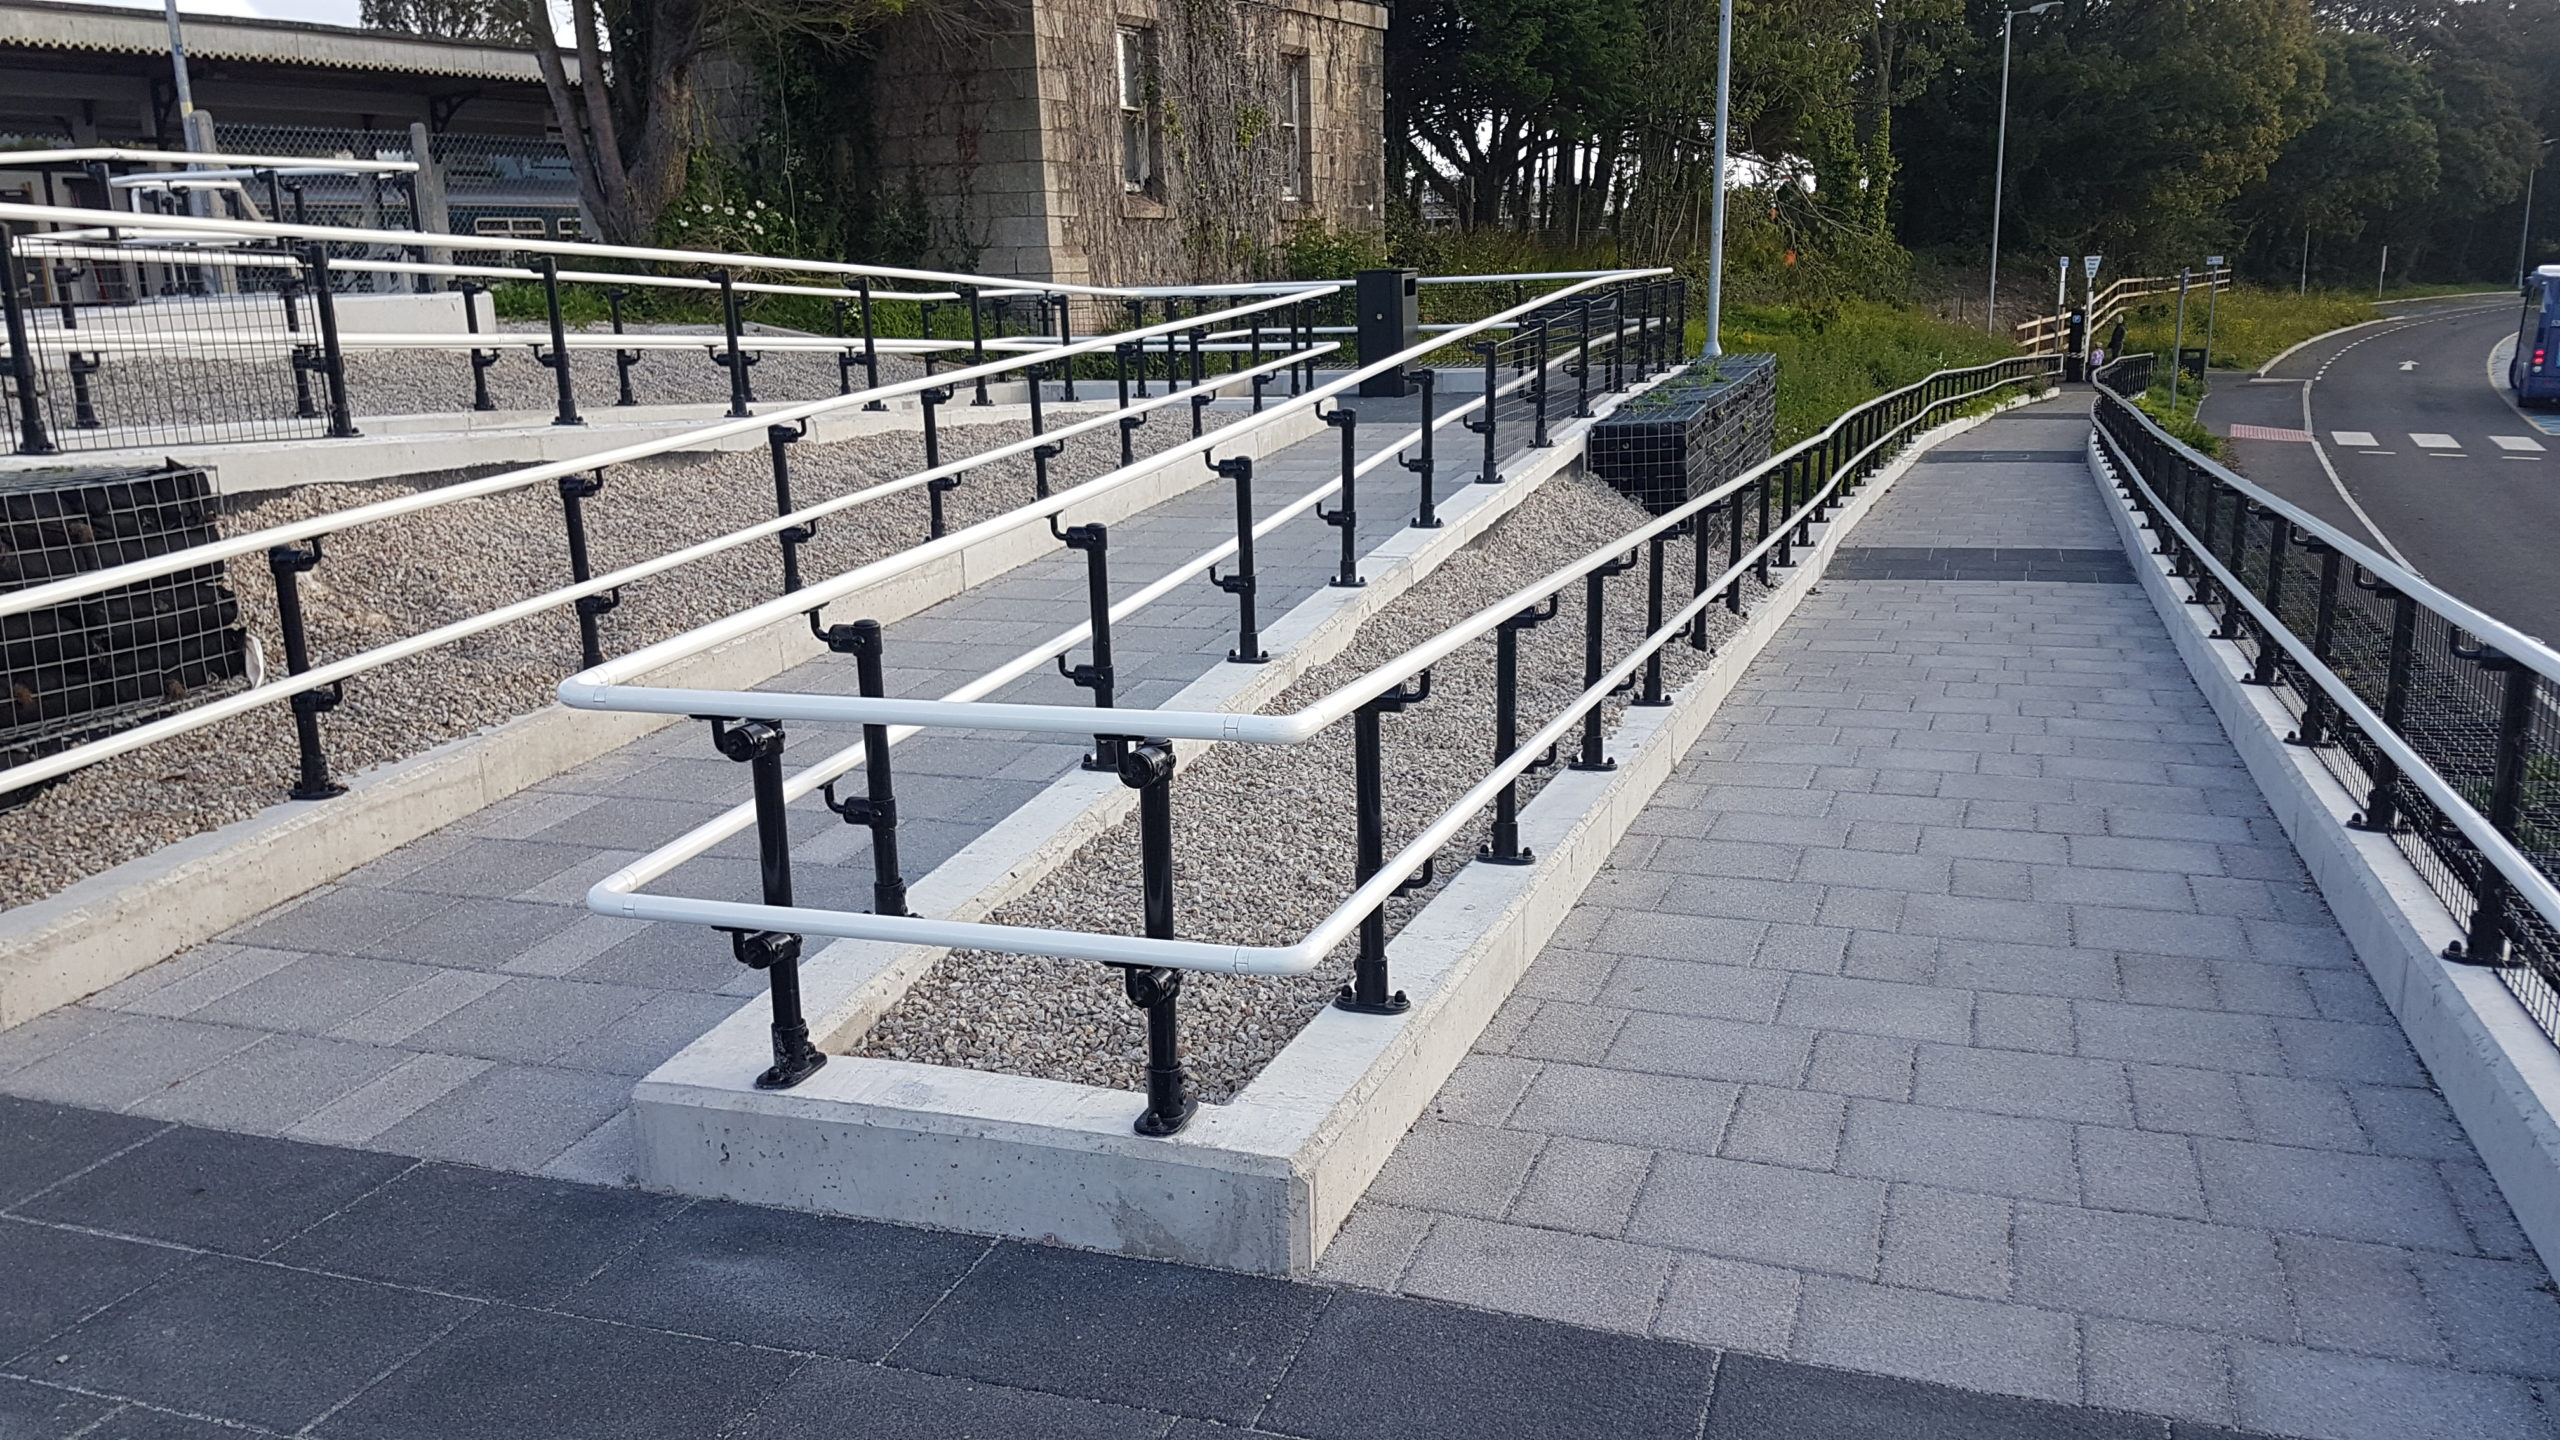 DDA handrail systems: Keeping your premises safe, compliant & accessible